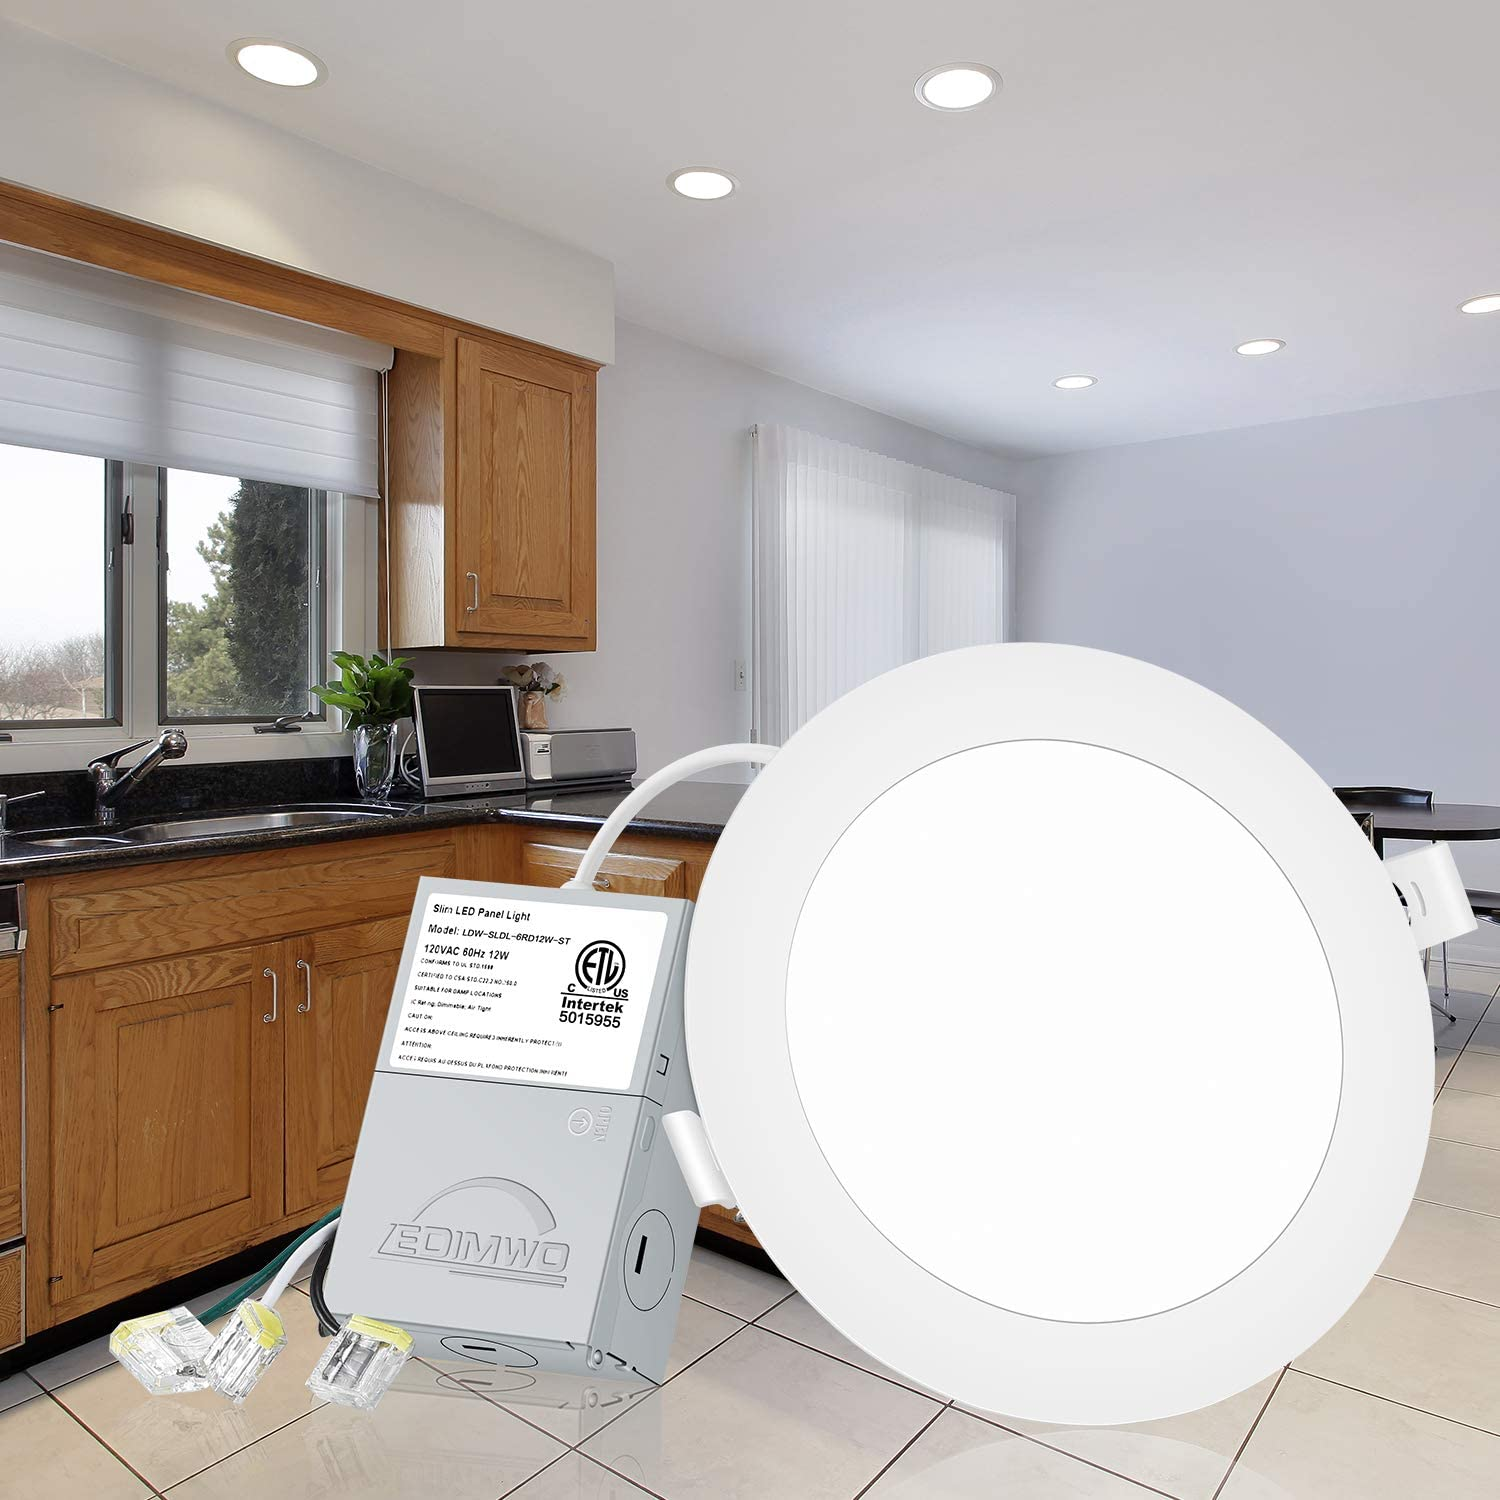 Led Panel Light with Junction Box 1000lm 5000K Daylight 12W=120W Recessed Ceiling Light LEDIMWO 6 Pack No-Flicker Dimmable 6LED Downlight IC Rated ETL /& Energy Star